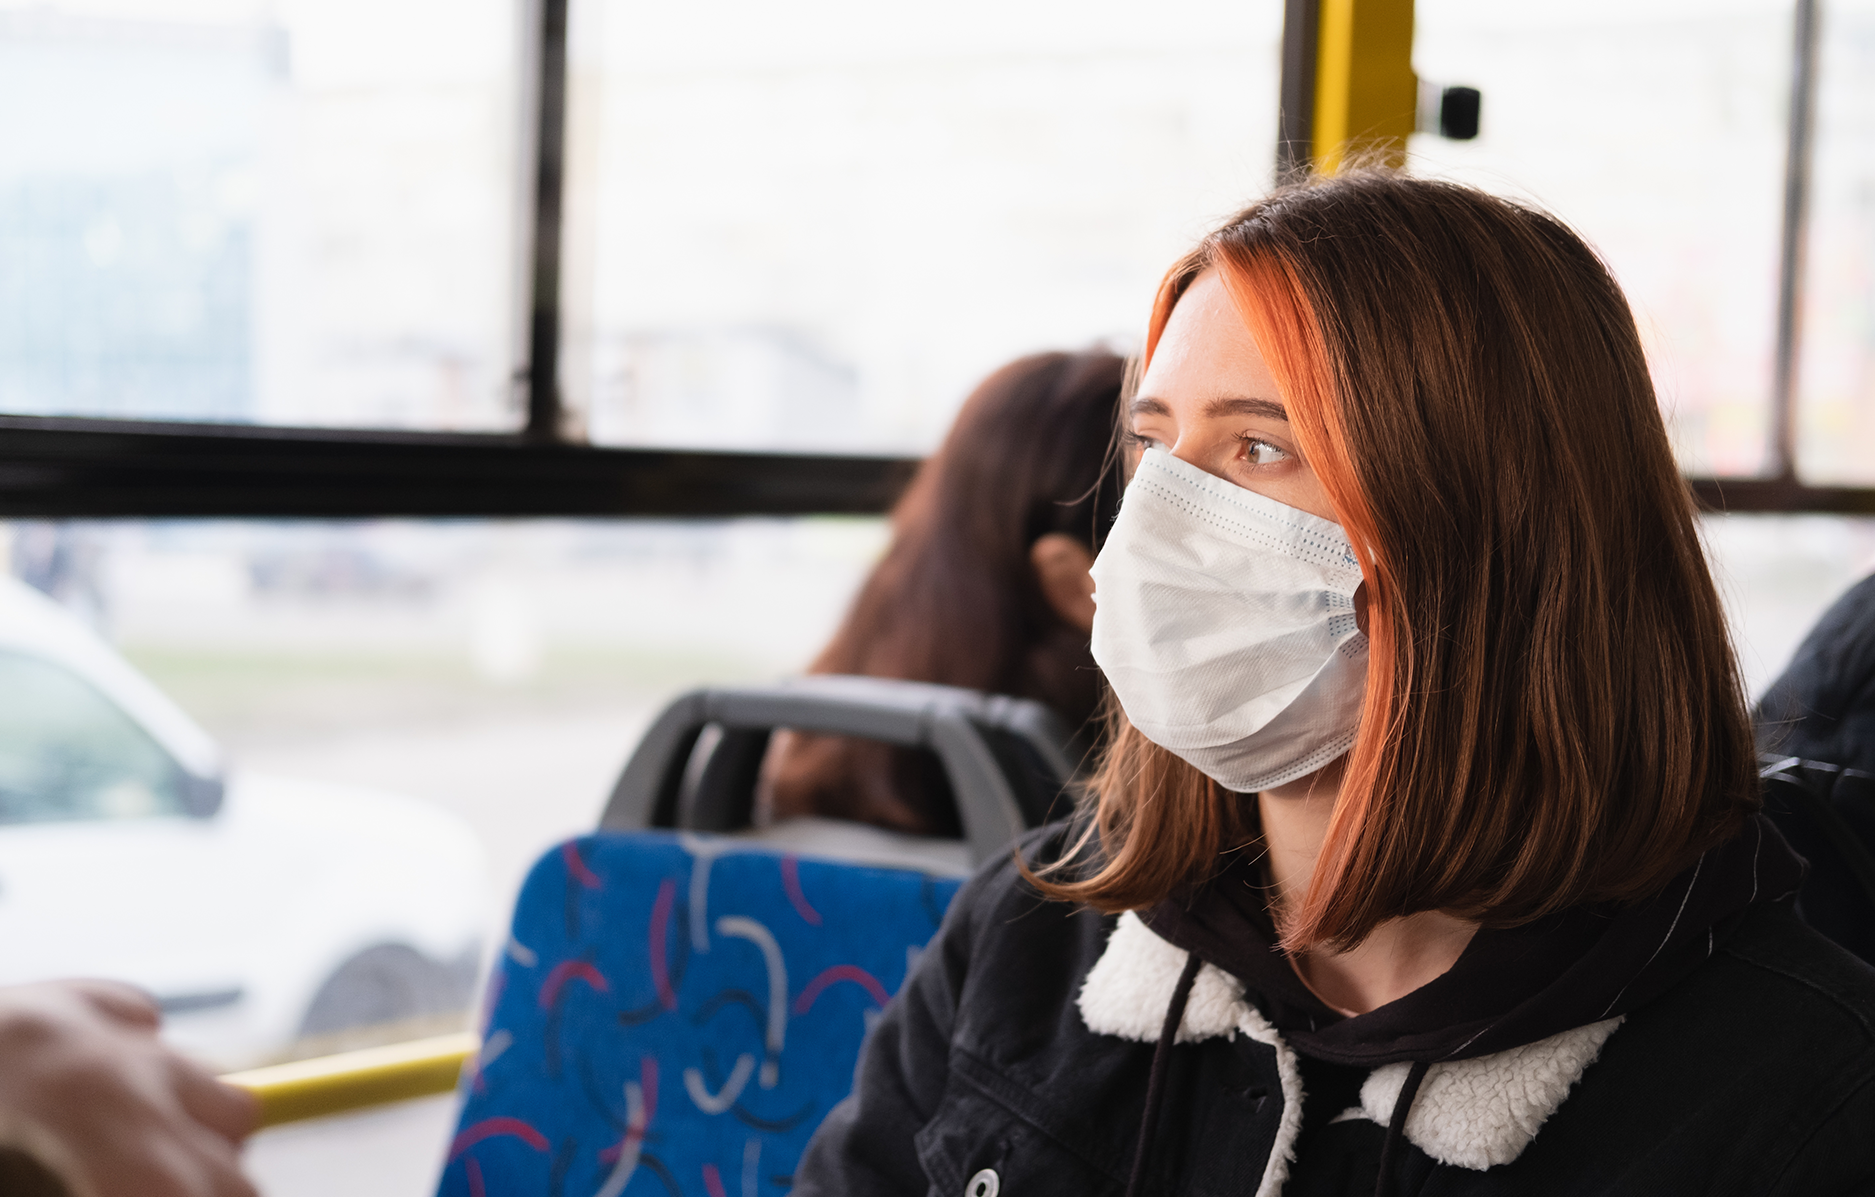 Person commuting with face mask